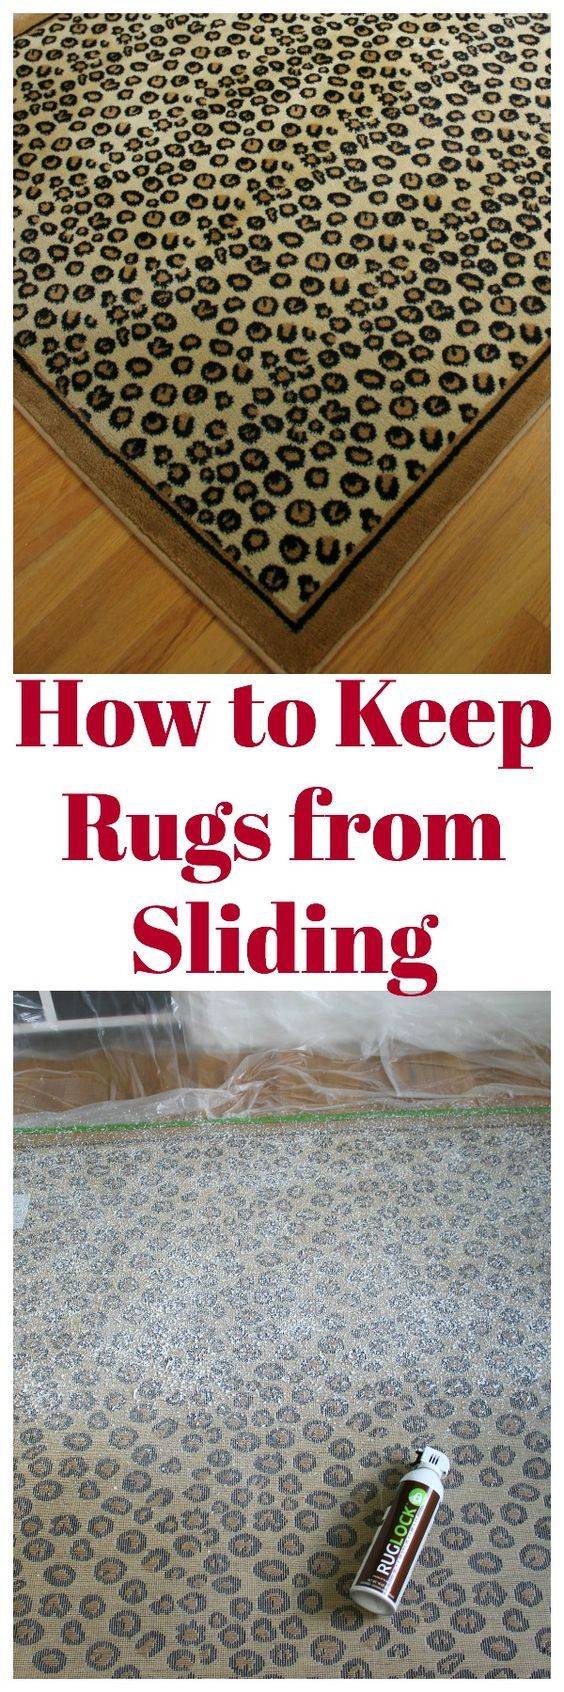 15 How To Keep Rugs From Sliding via simphome 1